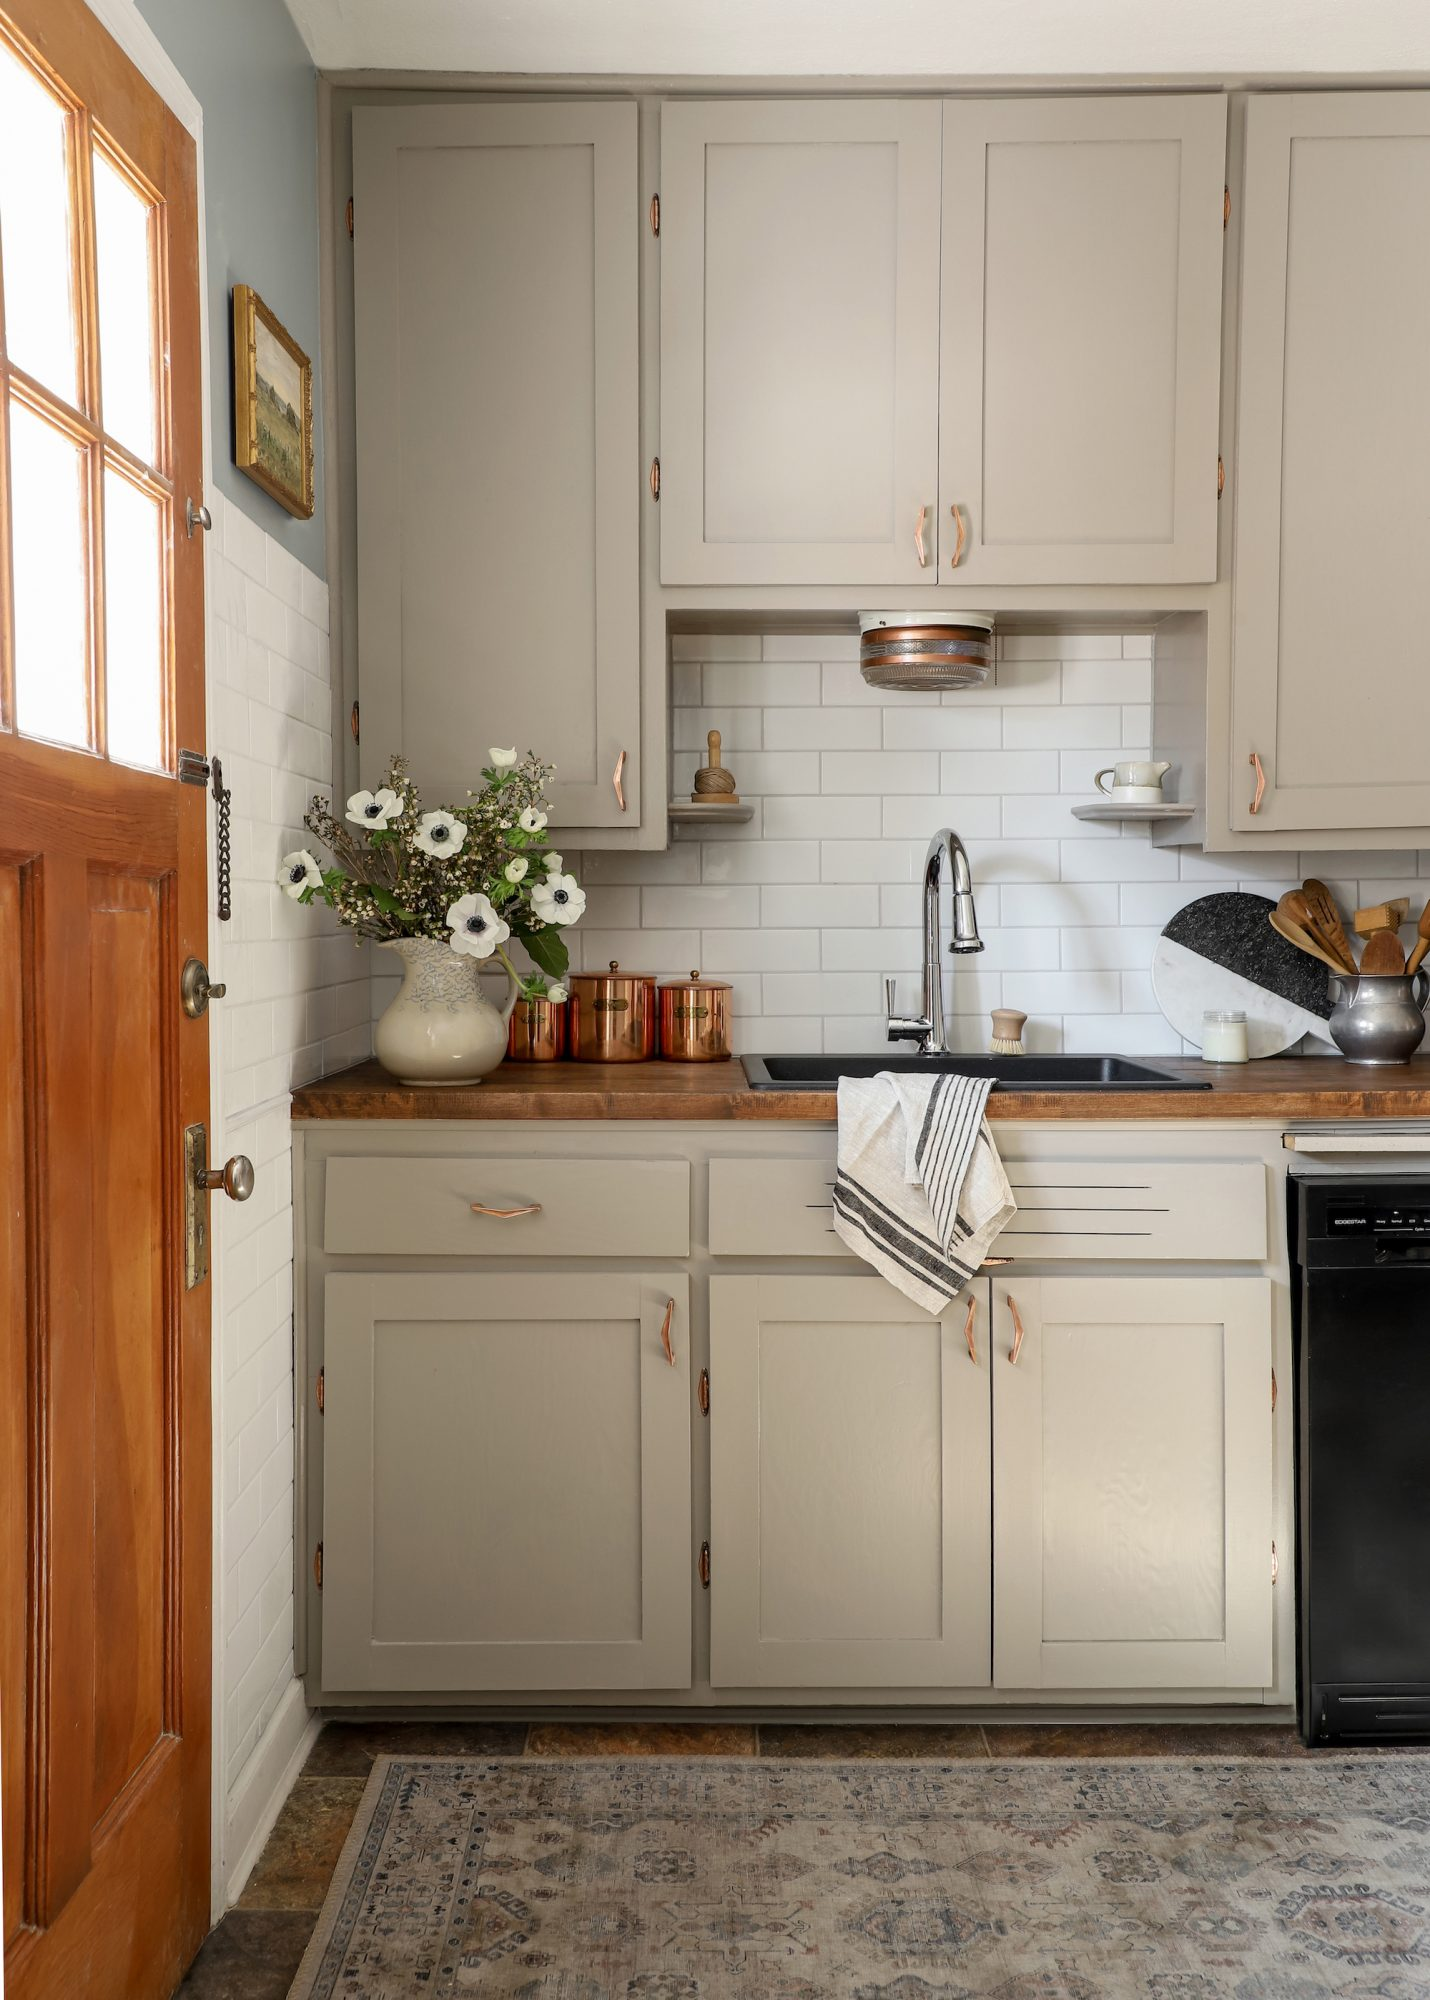 Space of the Week, Kitchen Cabinet Reveal